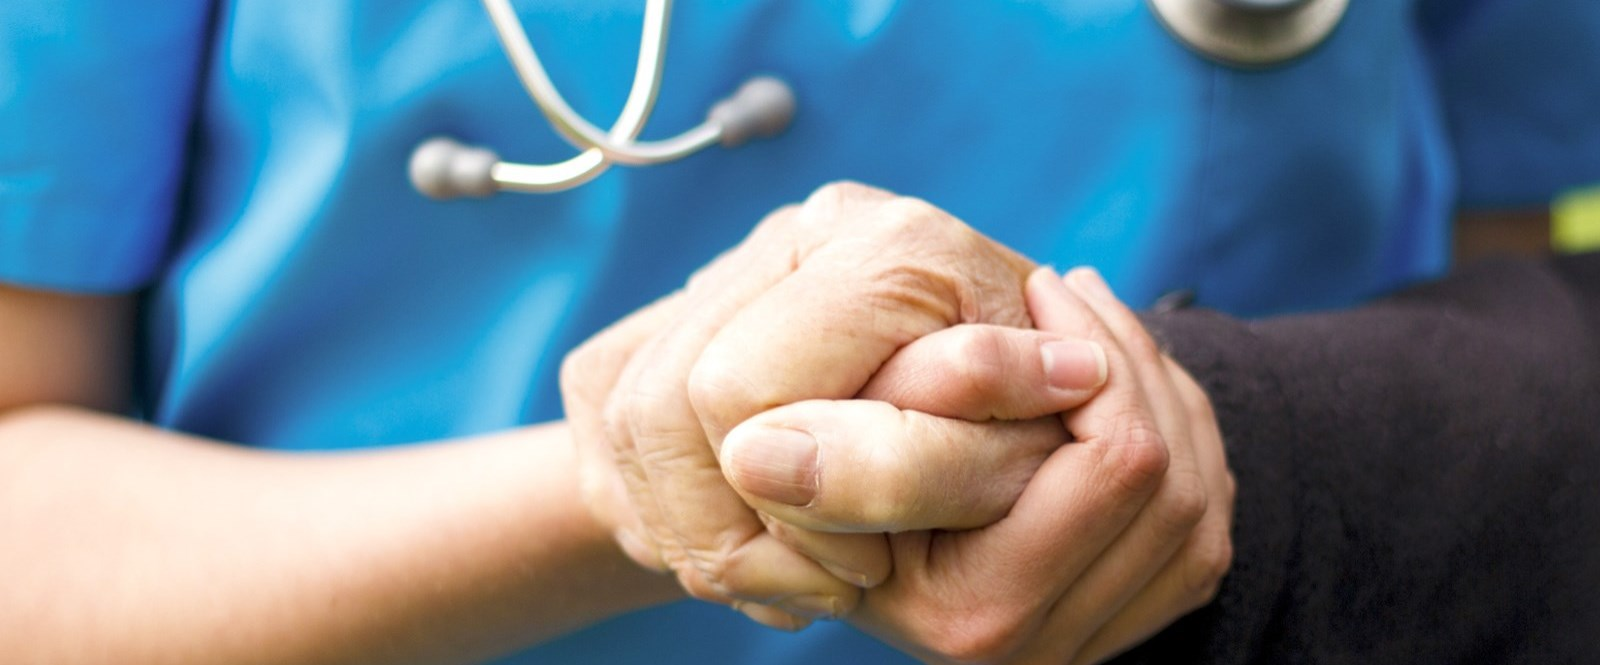 nurse holding senior hand